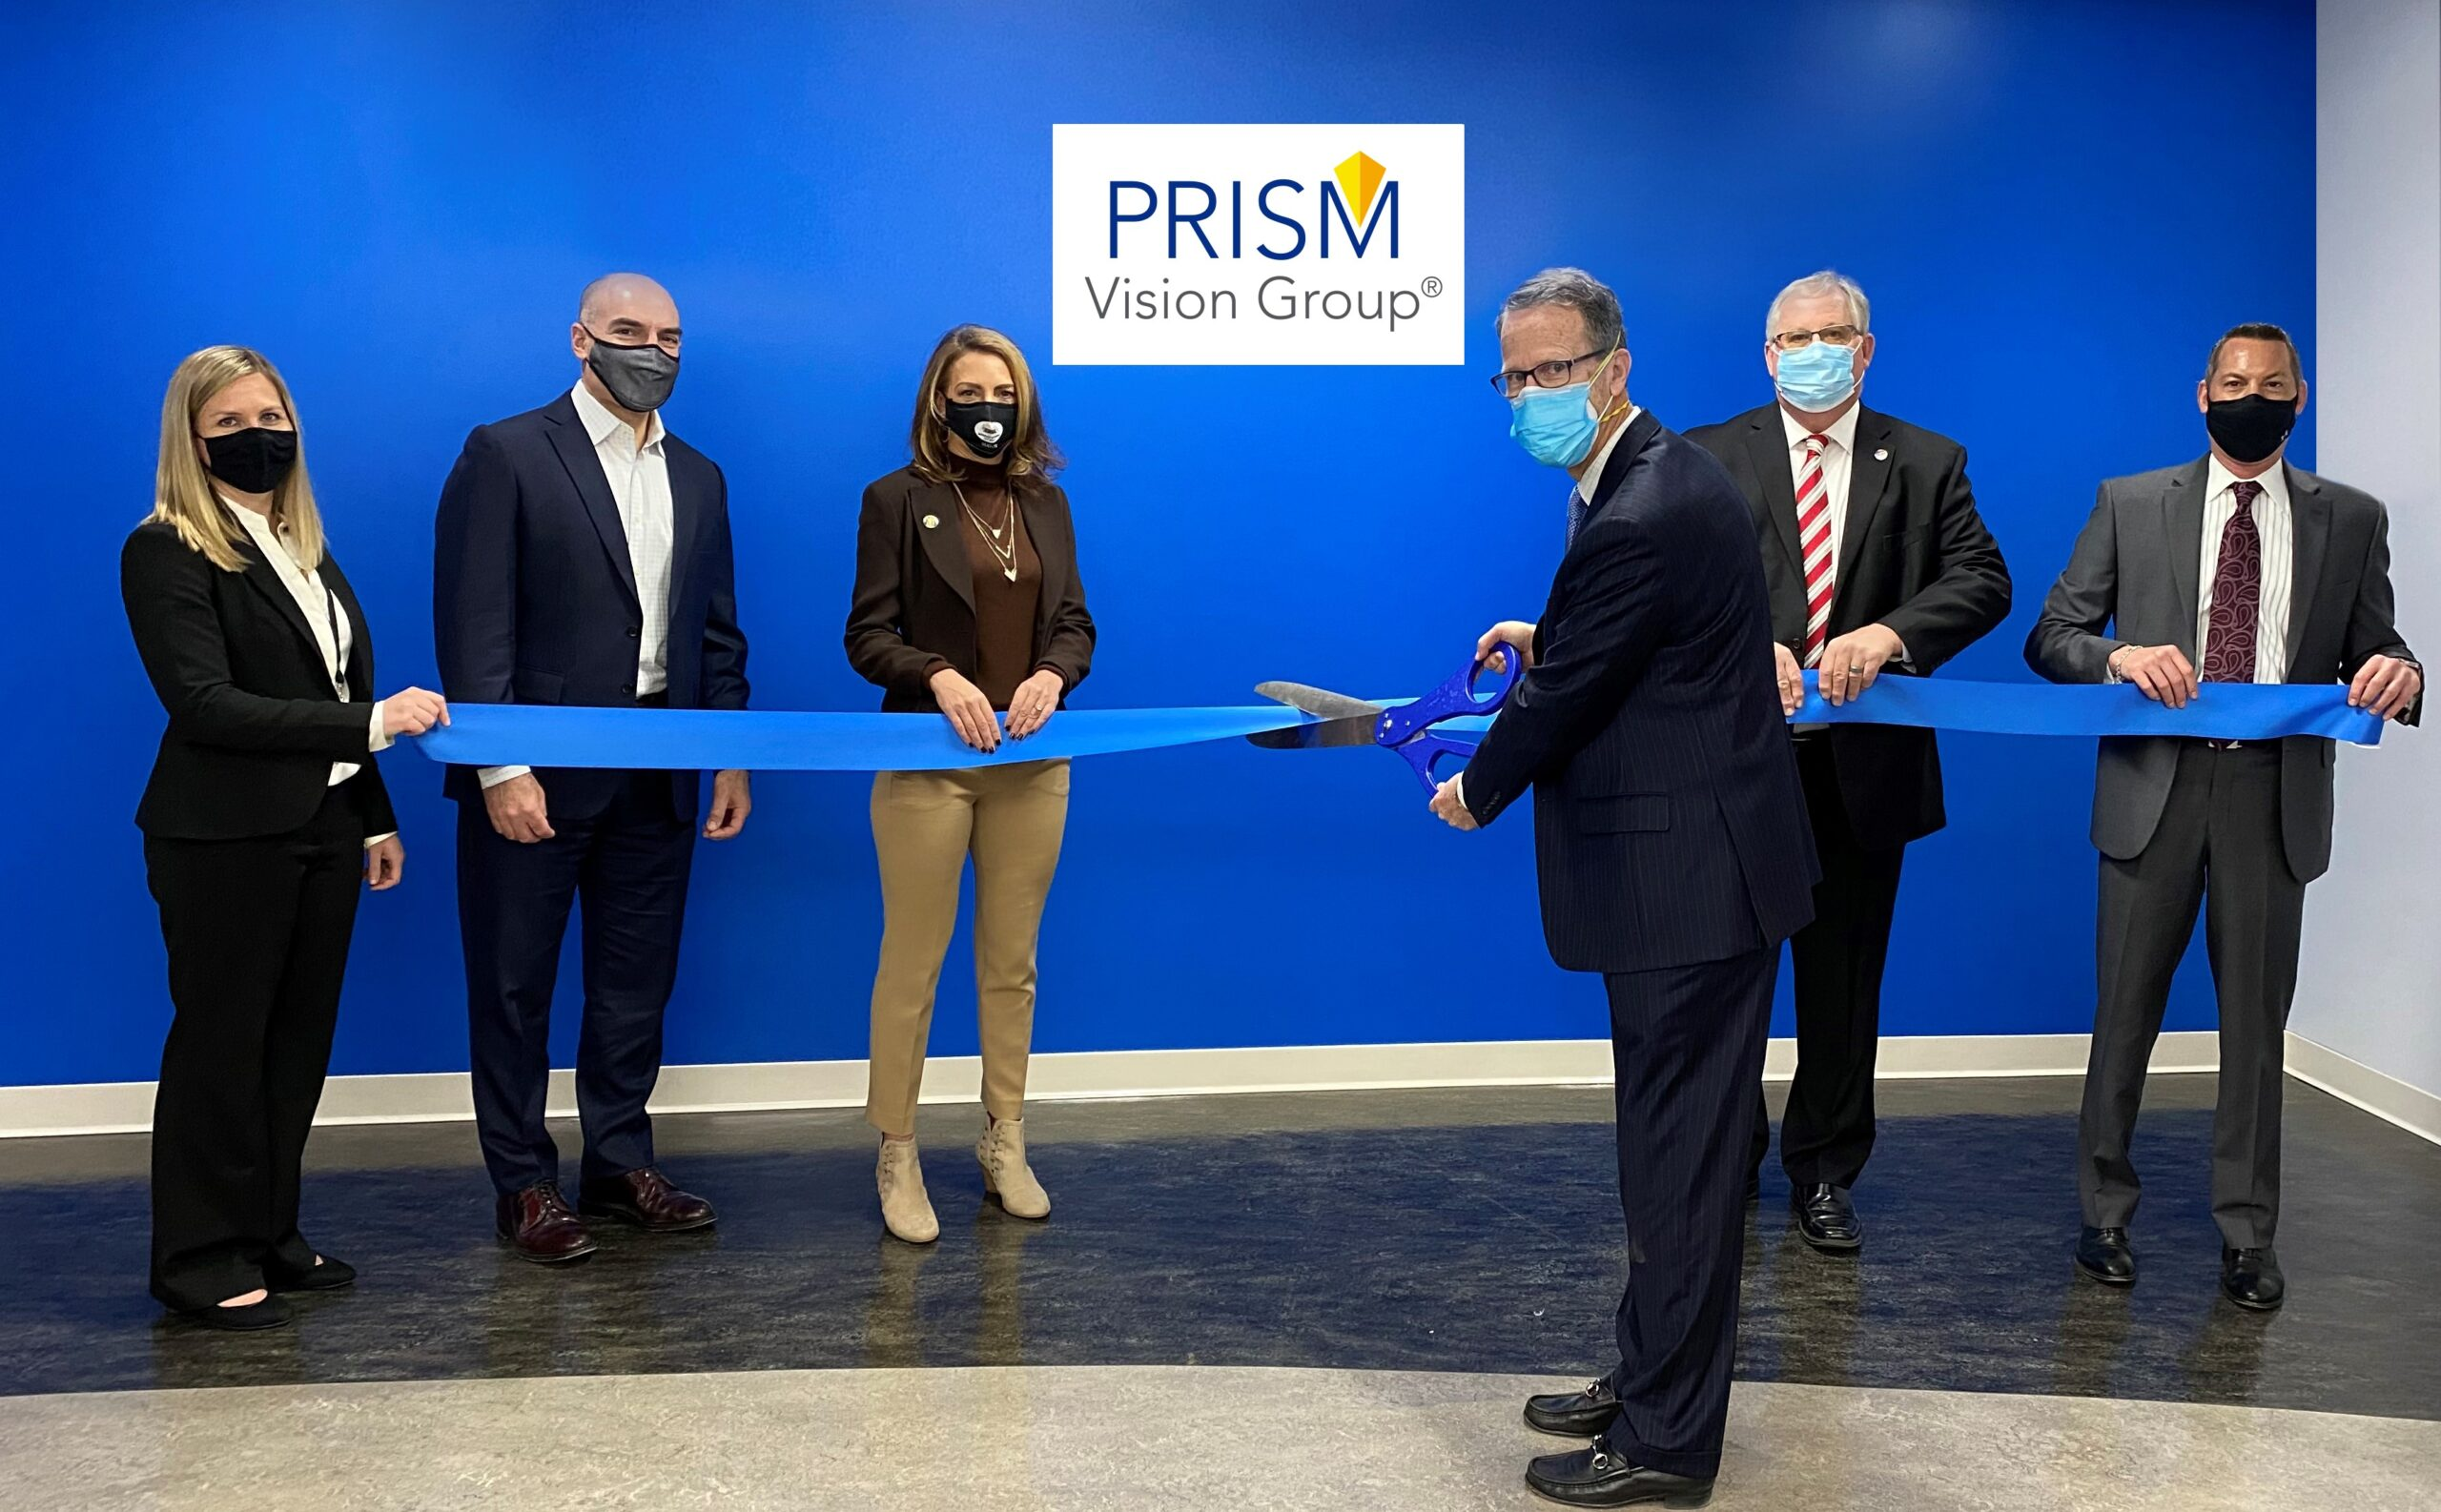 PRISM Vision Group® Moves Headquarters to Berkeley Heights